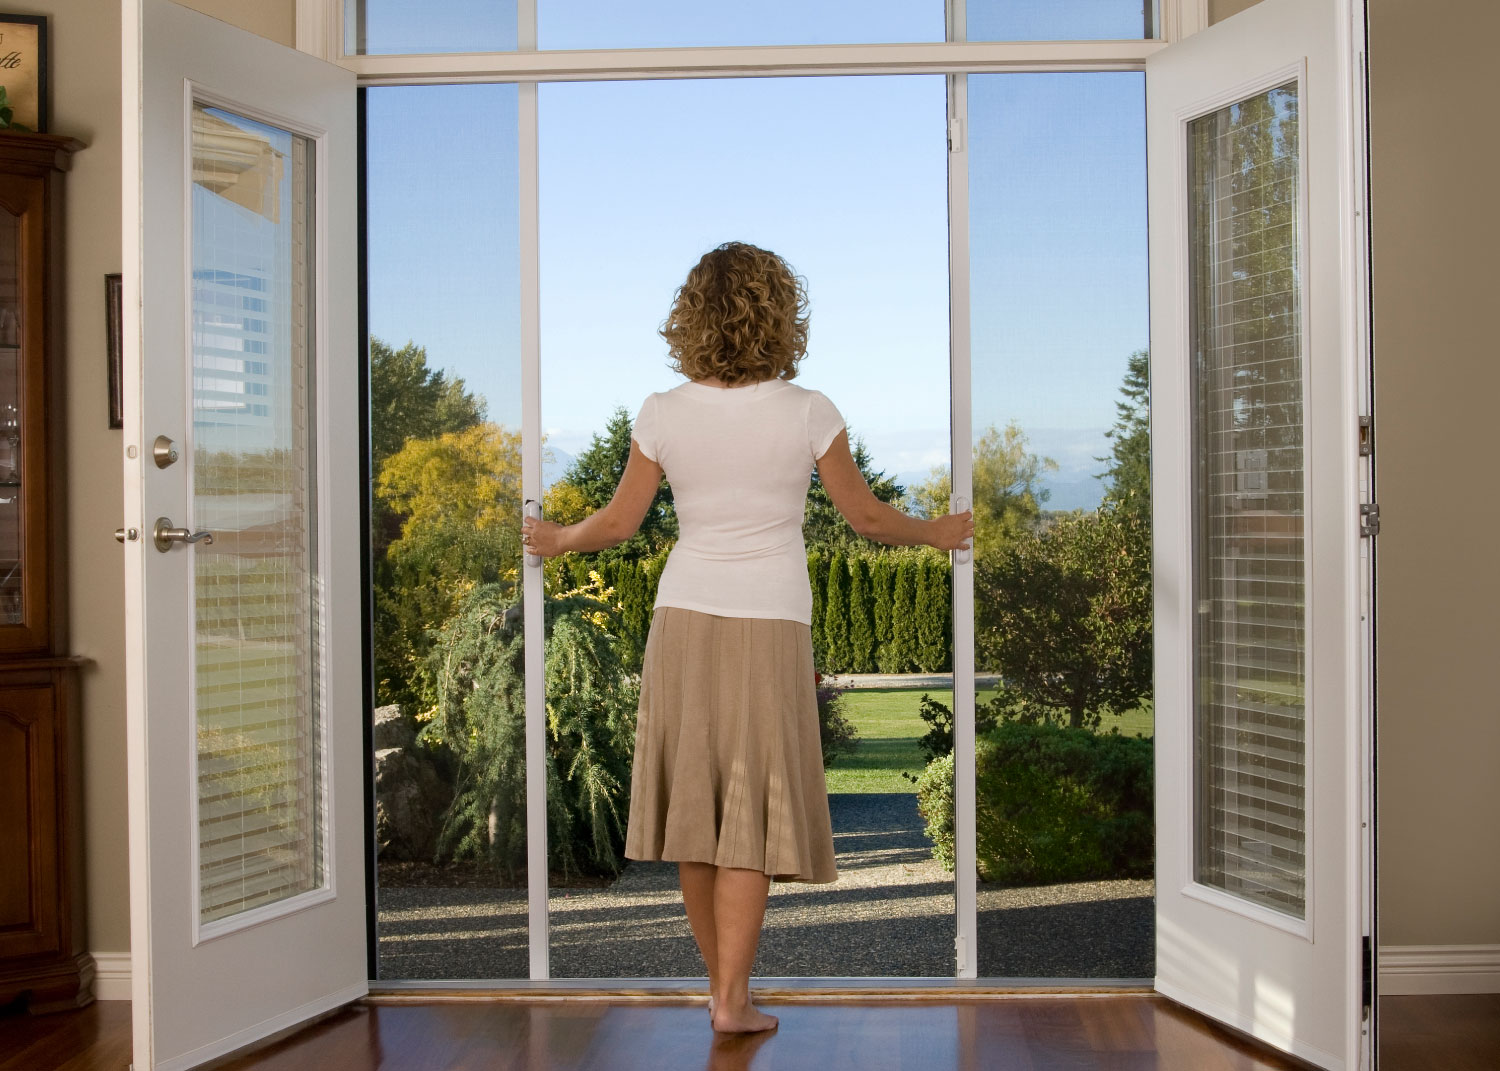 Allowing cool breeze into your home with Mirage Retractable Screen & Retractable Screen Doors \u0026 Screening Solutions | Mirage Screen Systems